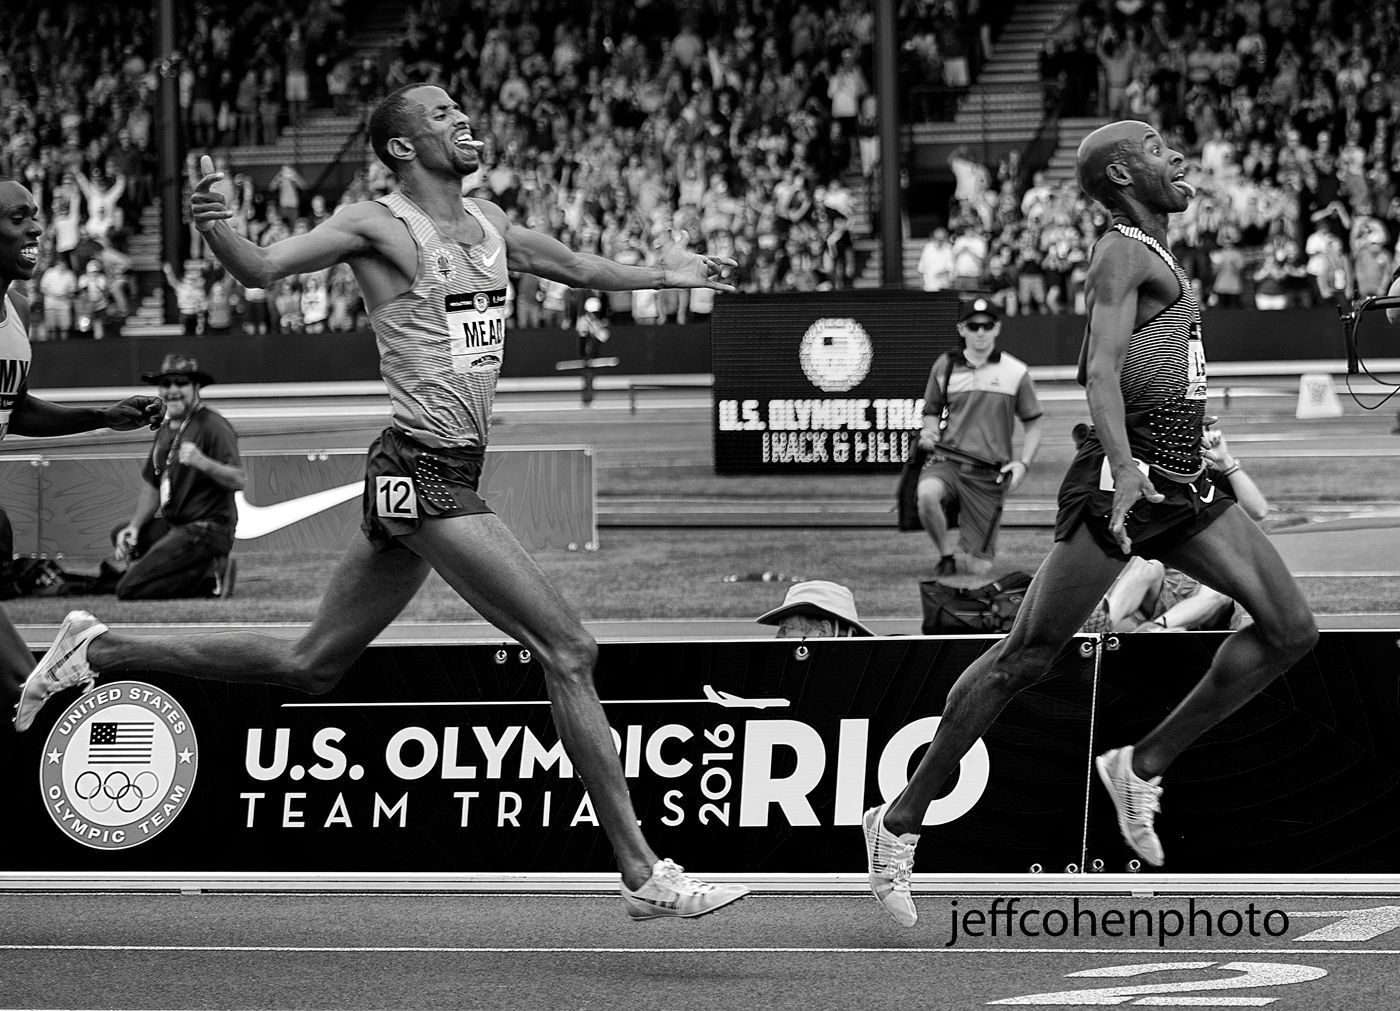 1r2016_oly_trials_day_8_lagat_mead_5000m_jeff_cohen_photo_26350_web.jpg